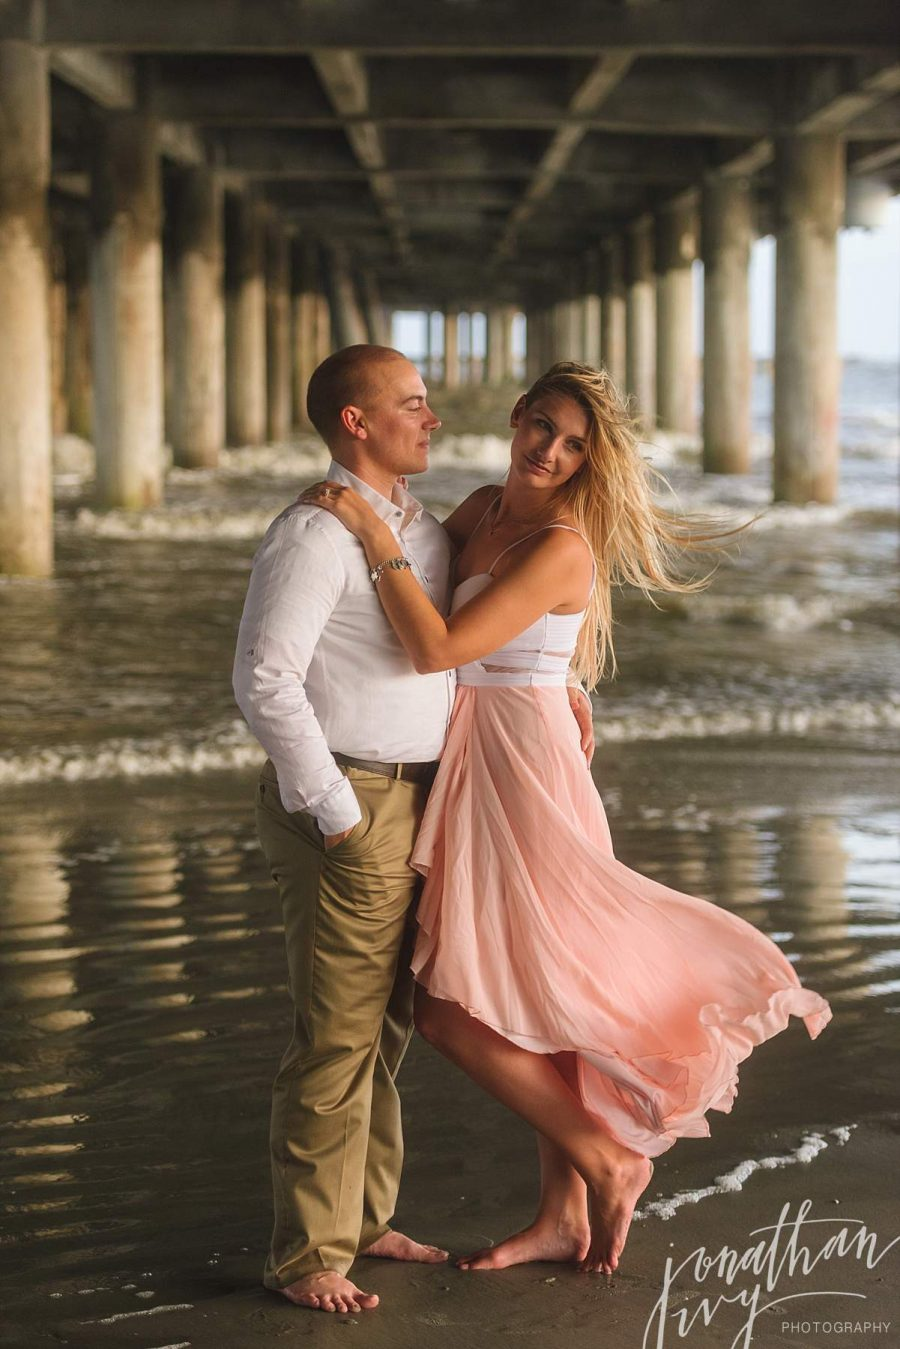 How To Dress for Engagement on Beach